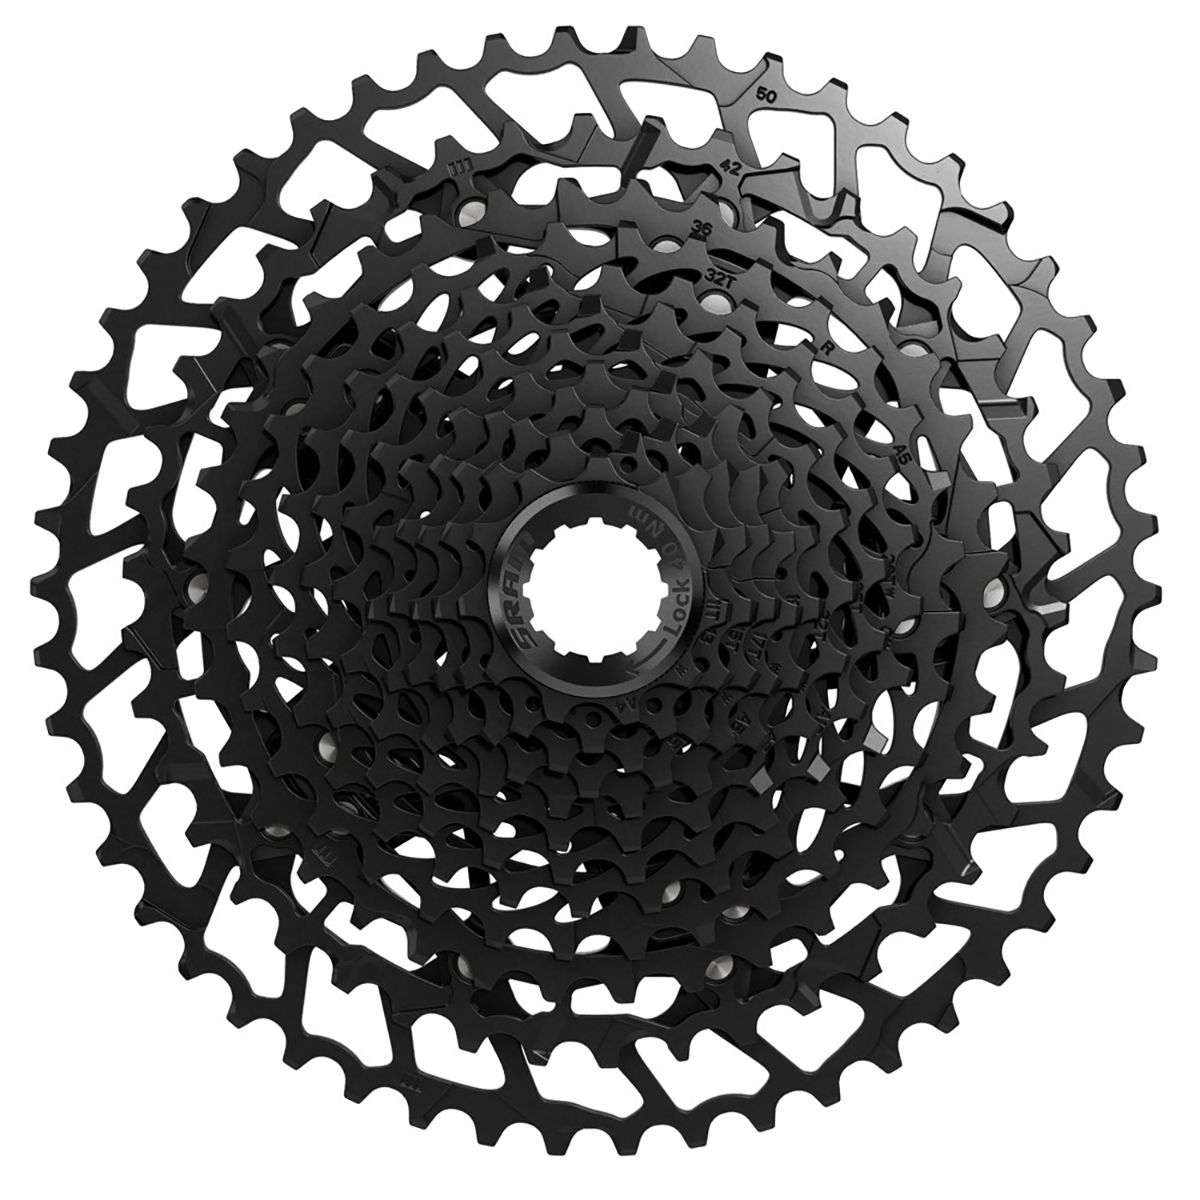 SRAM NX Eagle PG-1230 Bicycle Cassette 12 Speed 11-50T